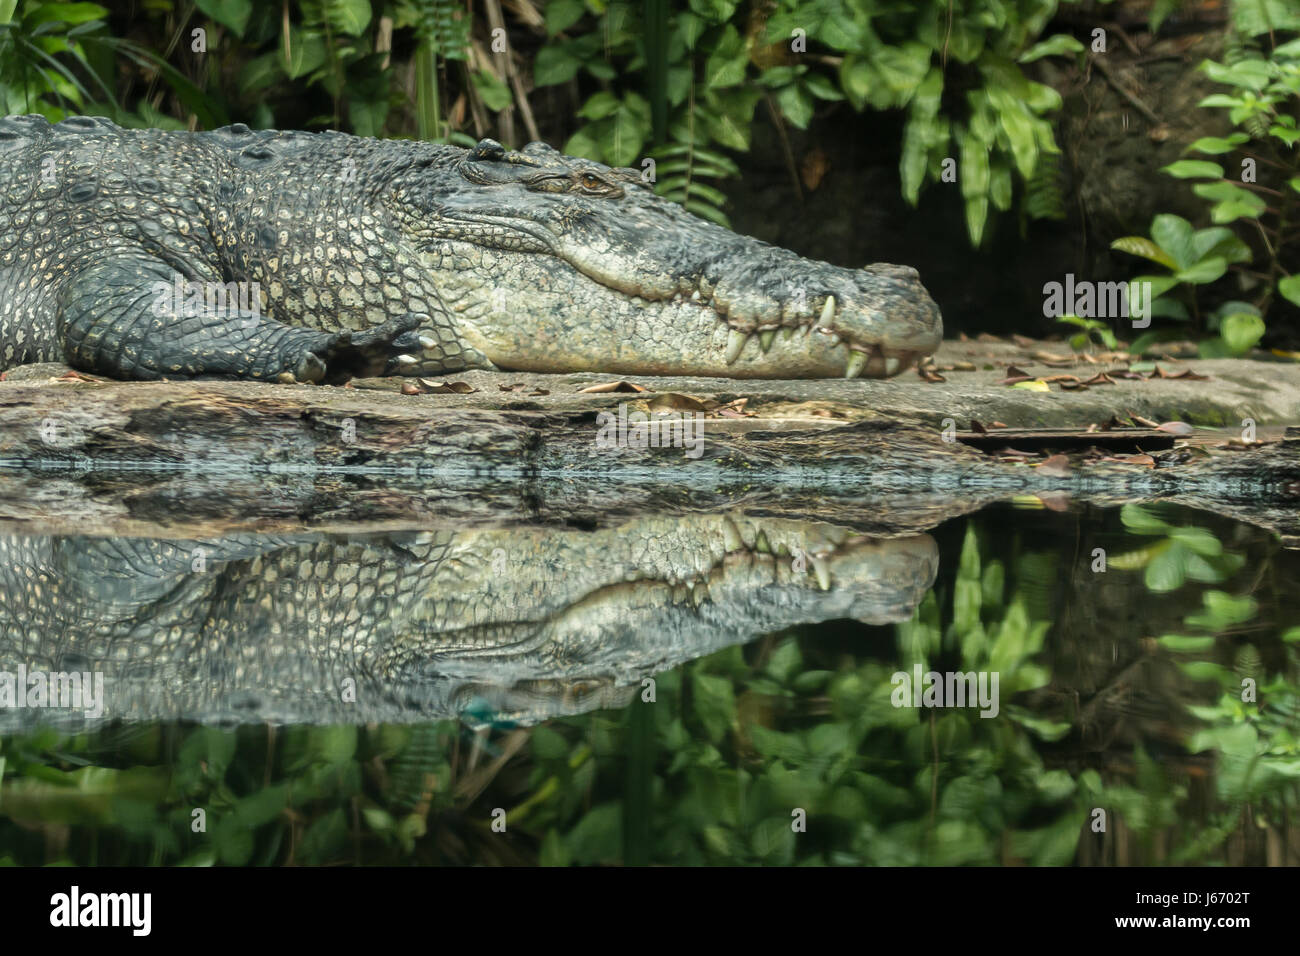 Saltwater crocodile (Crocodylus porosus) basking in sun, with reflection in the calm surrounding water. - Stock Image